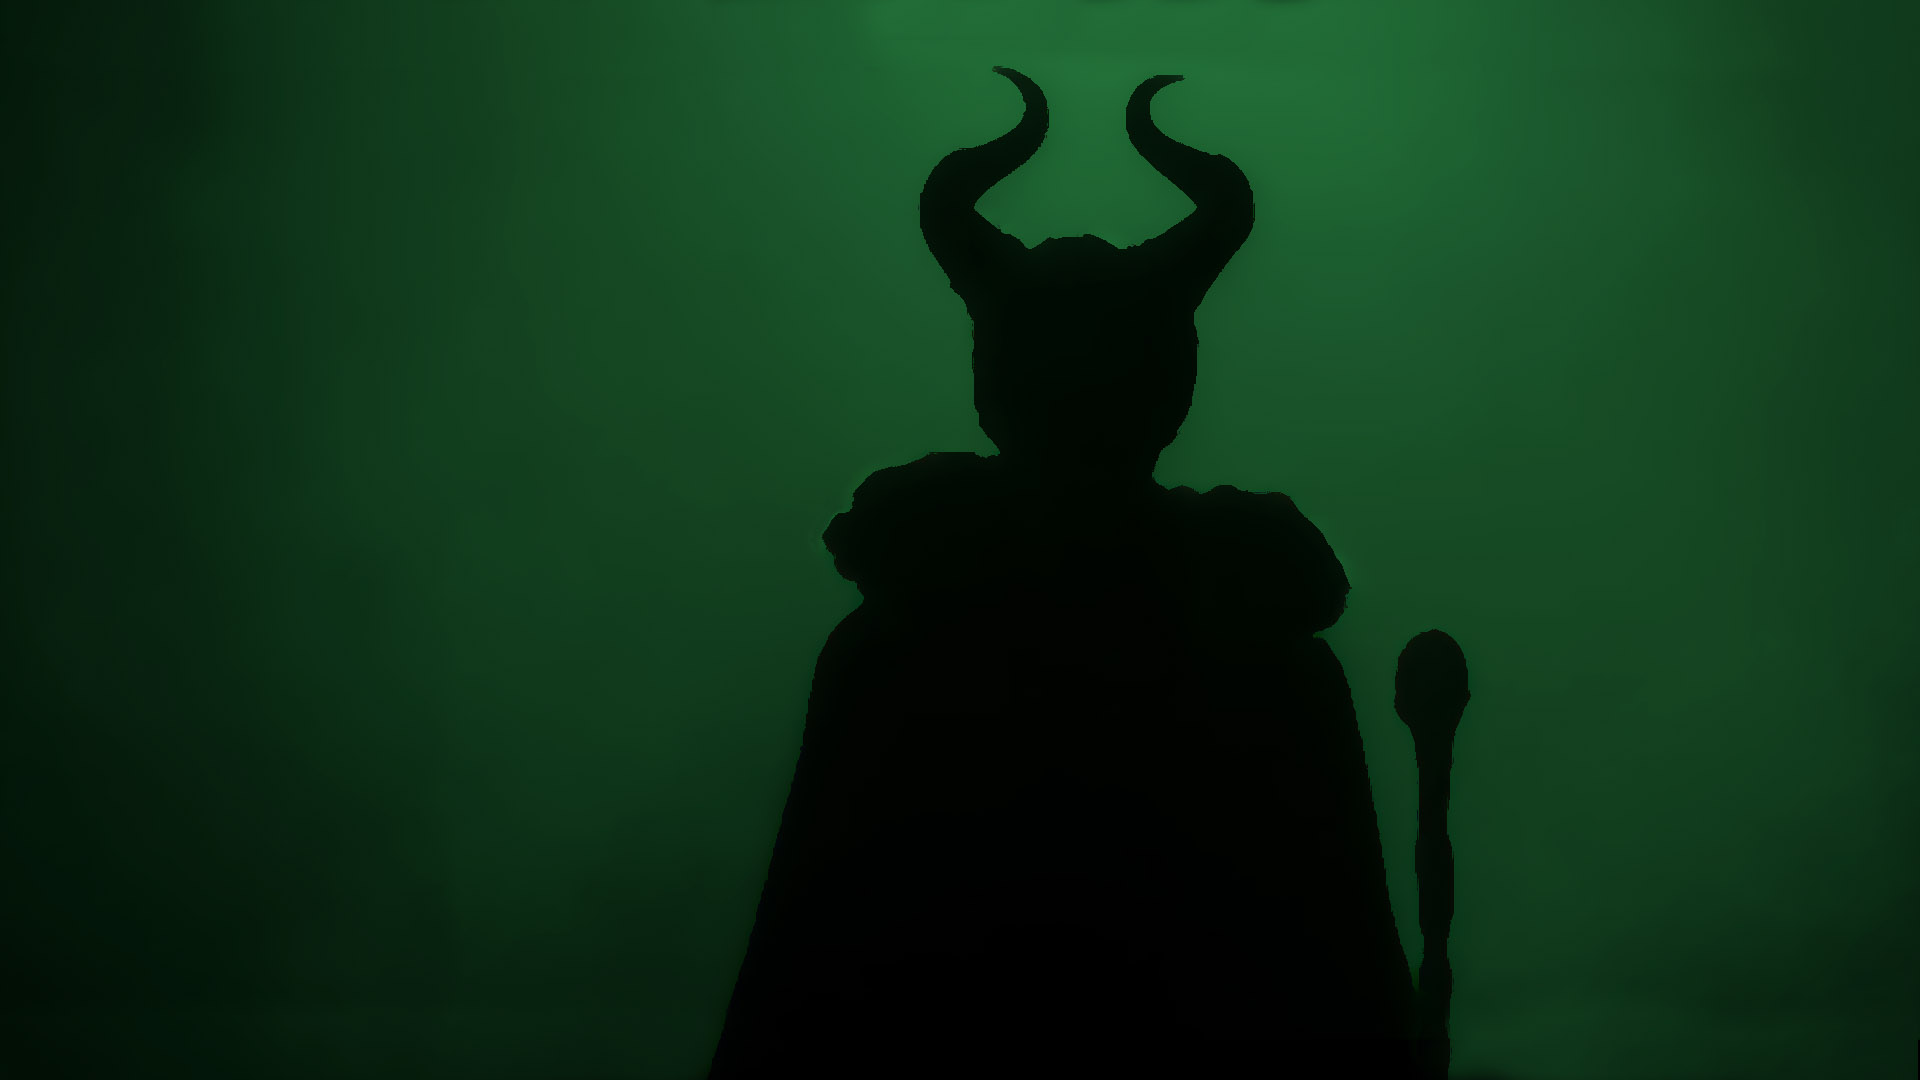 Free Maleficent Wallpaper 28403 1920x1080 px HDWallSourcecom